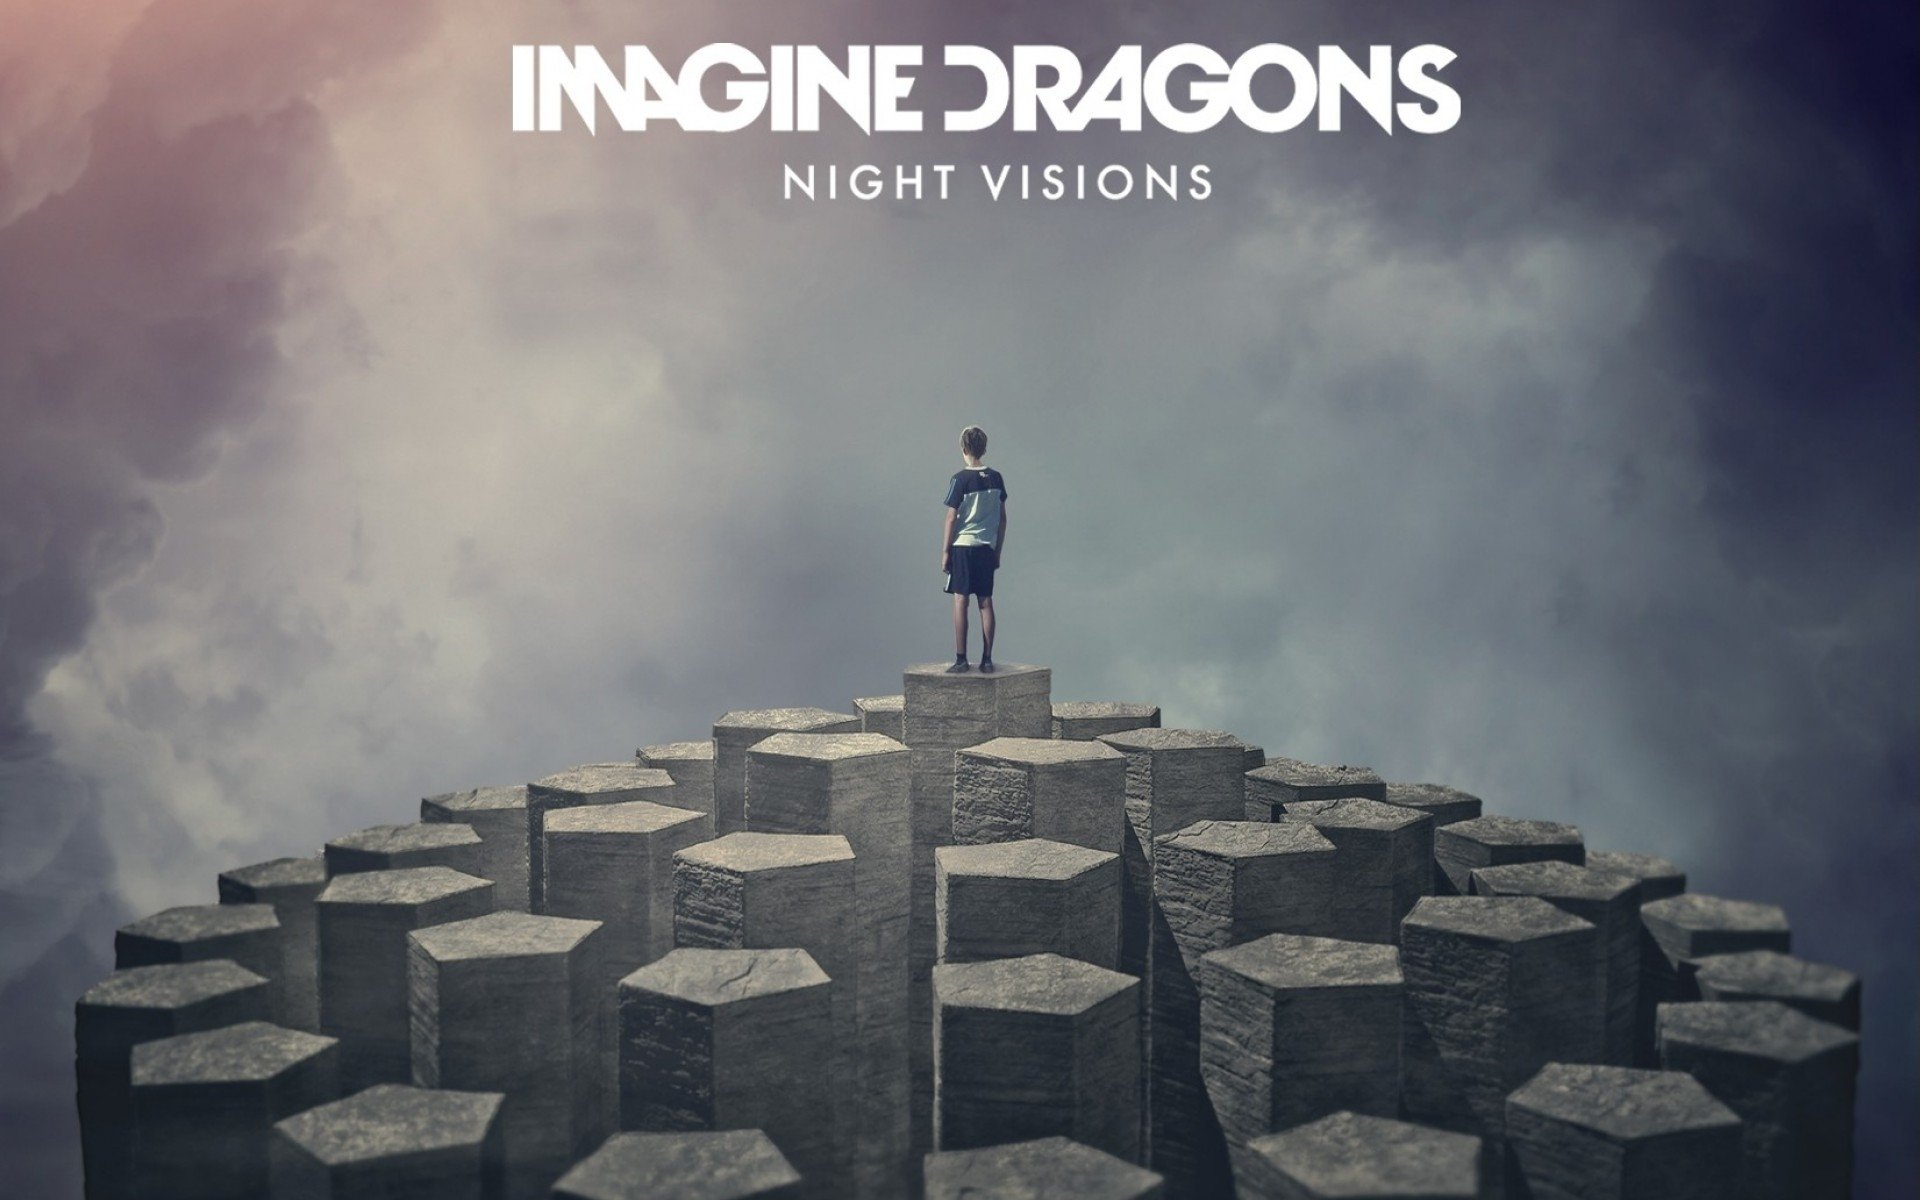 38 Imagine Dragons Fondos De Pantalla Hd Fondos De